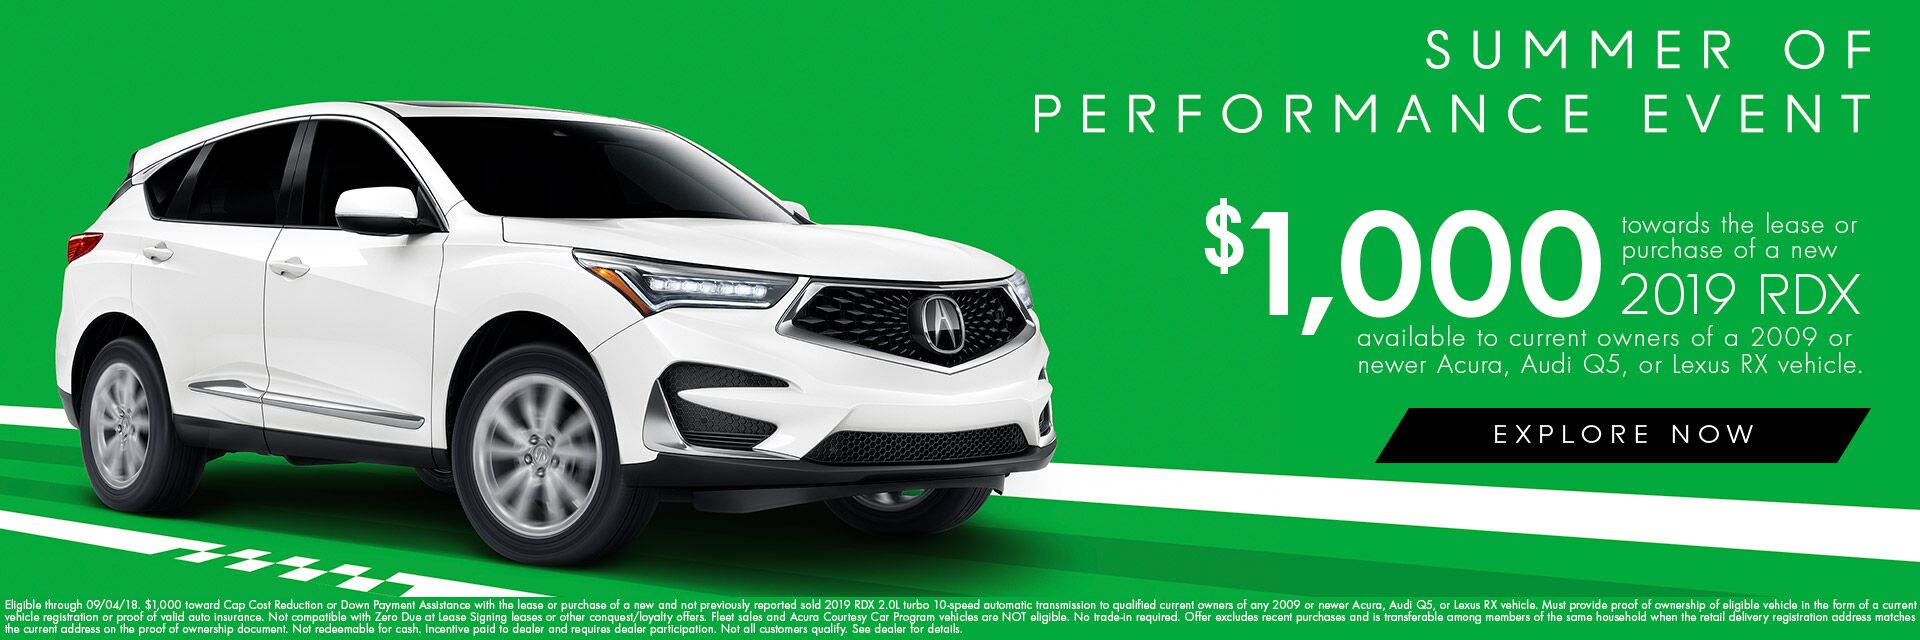 2019 RDX Loyalty Cash